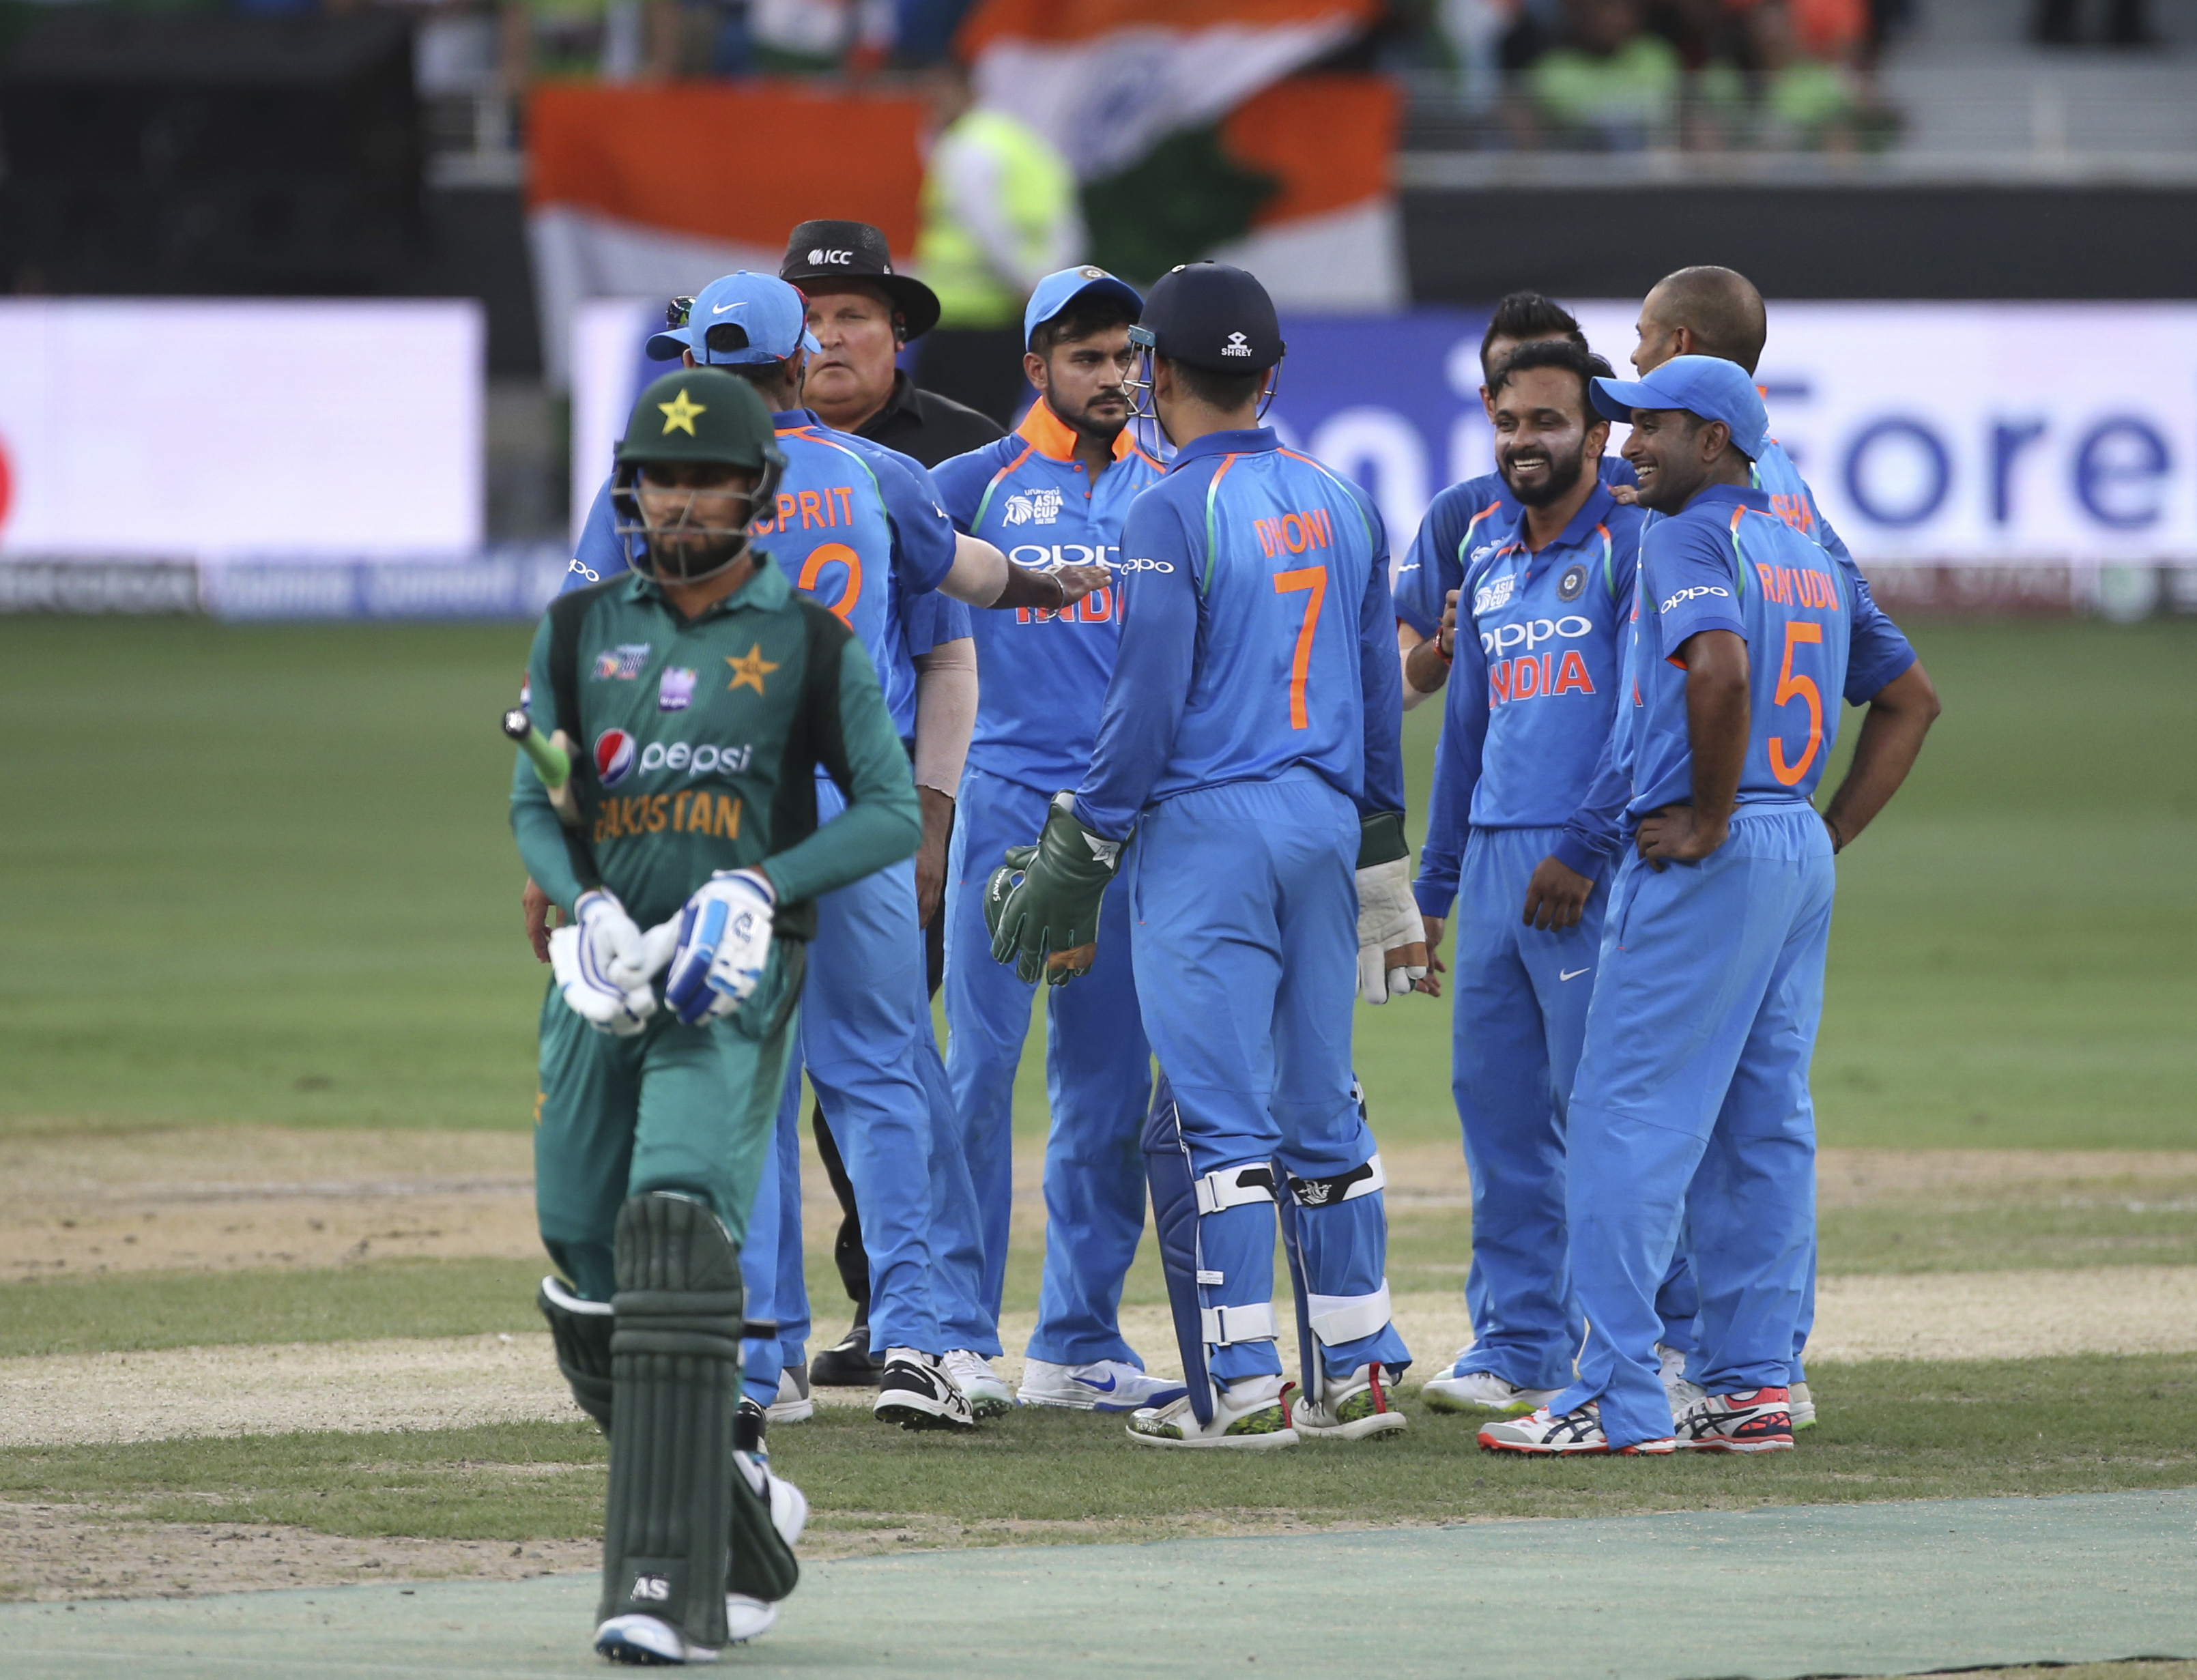 India's Kedar Jadhav, third right, celebrates with teammates the dismissal of a Pakistan batsman during the one day international cricket match of Asia Cup between India and Pakistan in Dubai, United Arab Emirates - AP